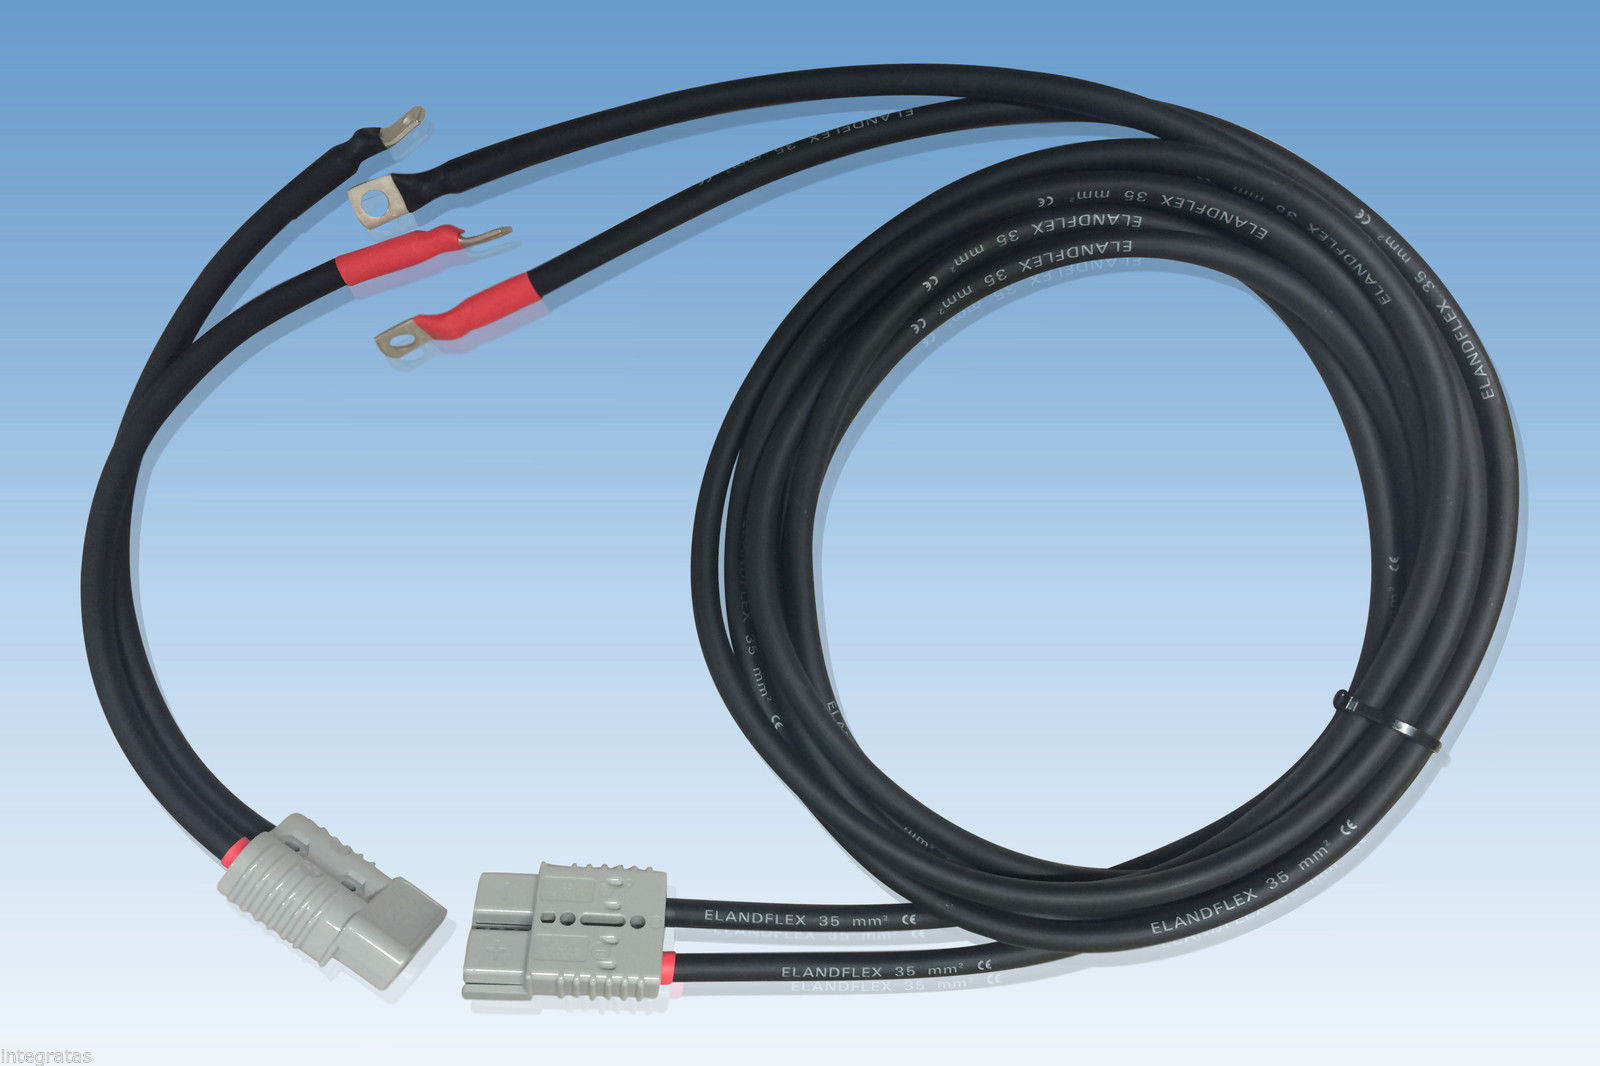 Battery Cables For Trucks : Winch battery extension cables anderson british made